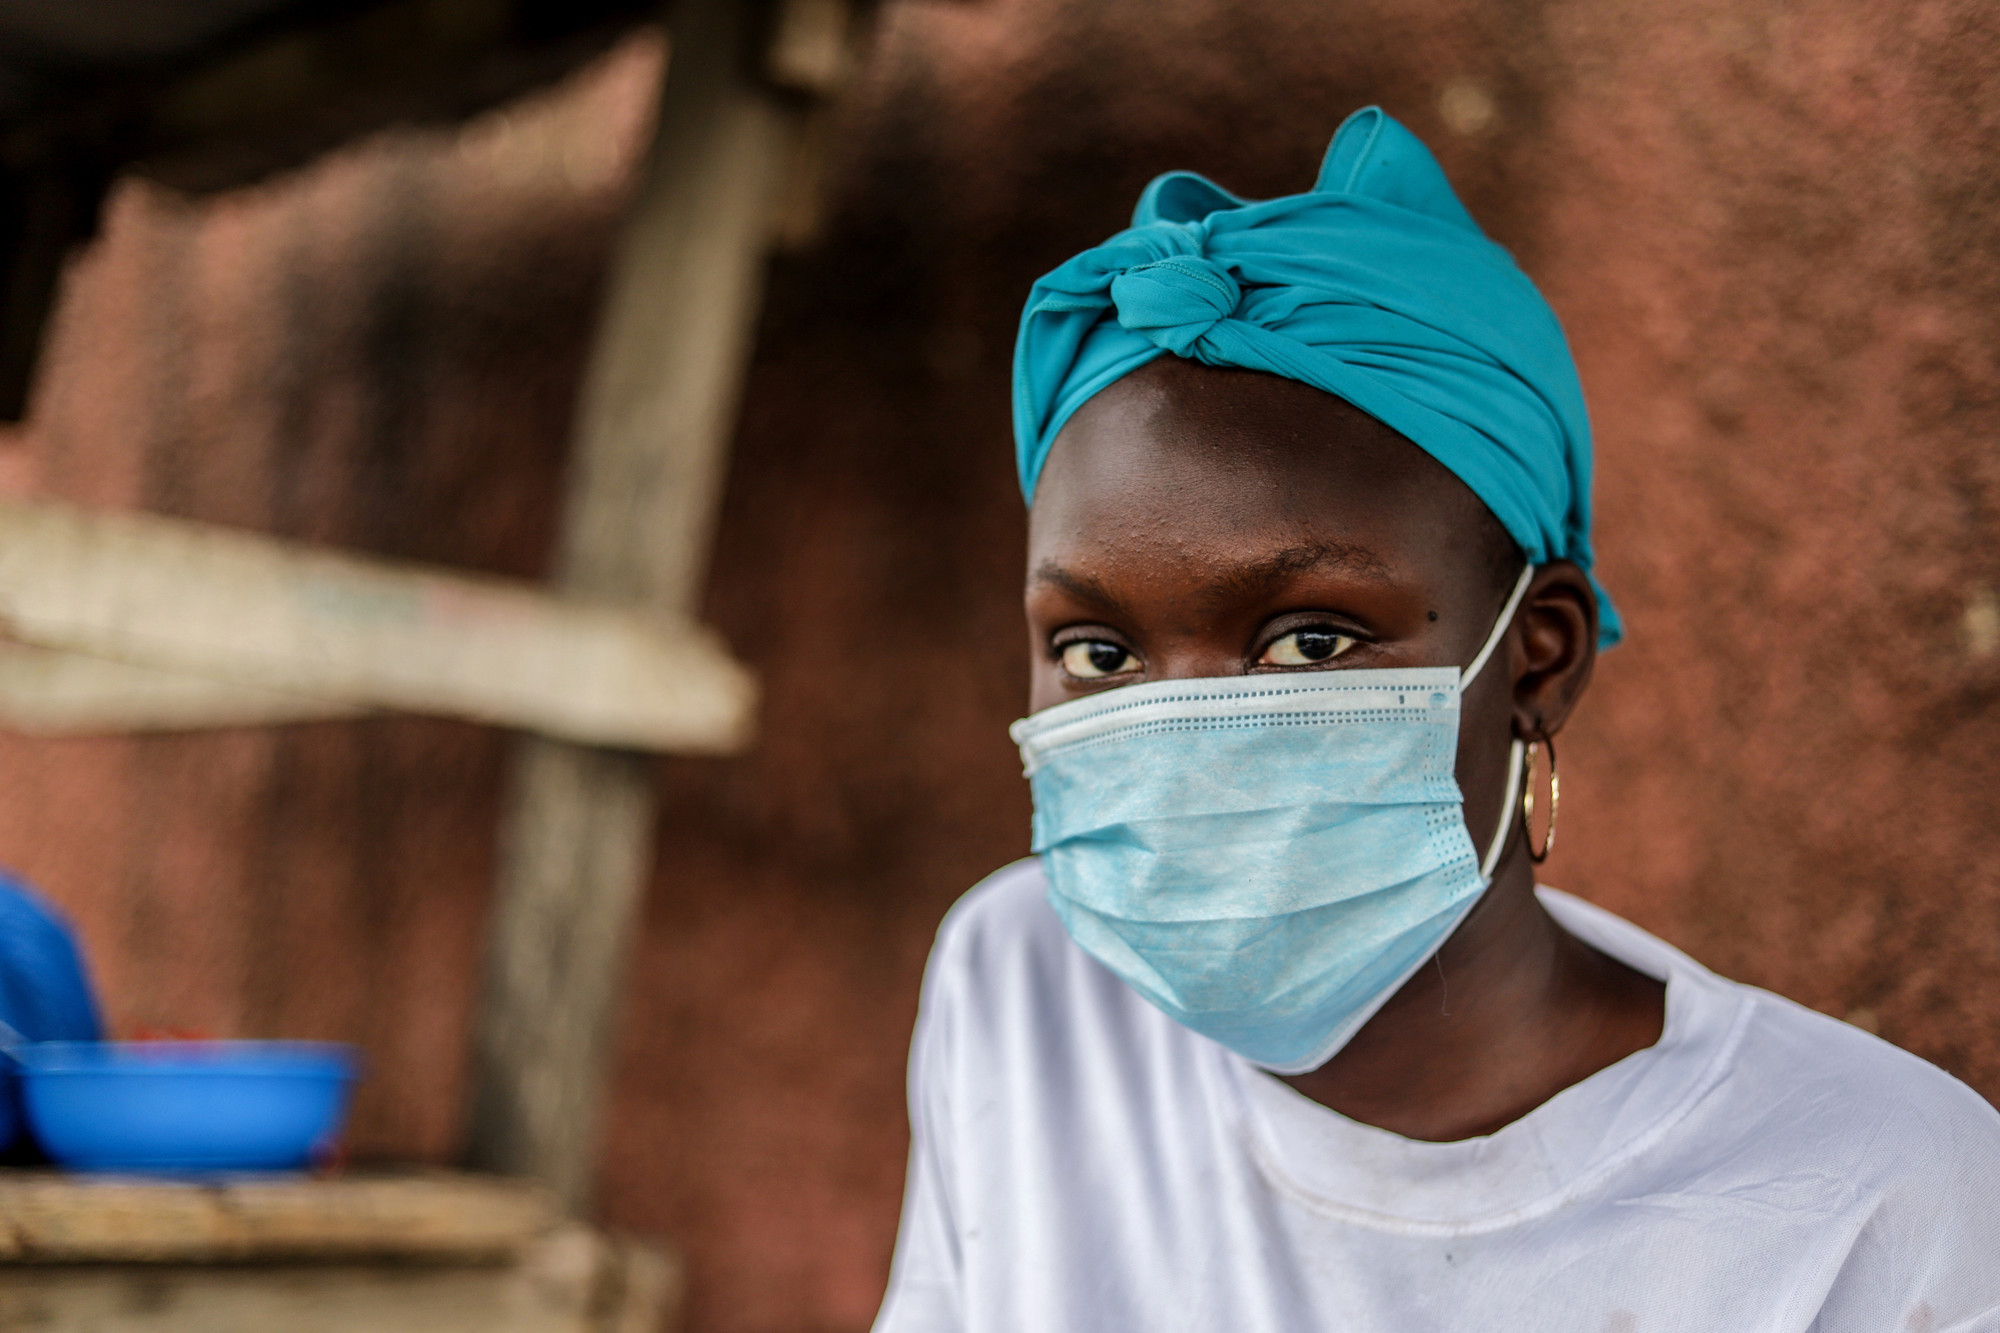 a woman wears a medical face mask in front of a clay building.